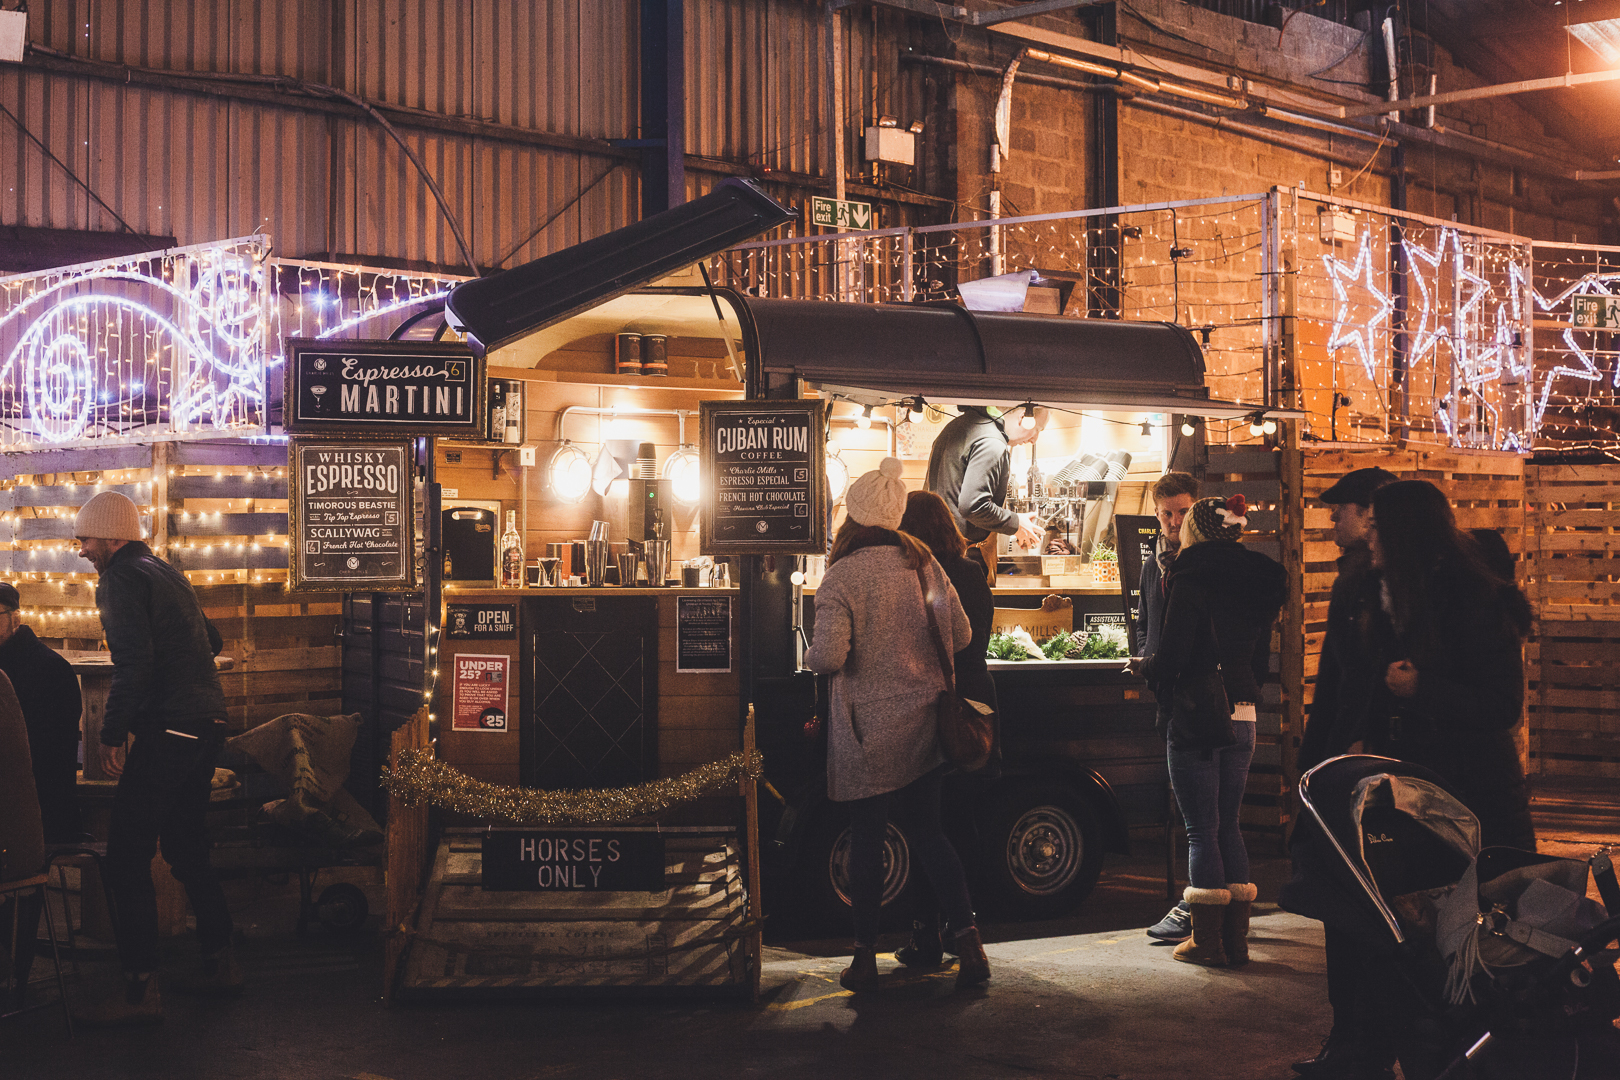 When it comes to quick, delicious street food, nothing beats a proper food market! The Big Feed Street Food Market in Glasgow gathers the best street food vendors from around Scotland and many of the stalls have delicious vegan options available!